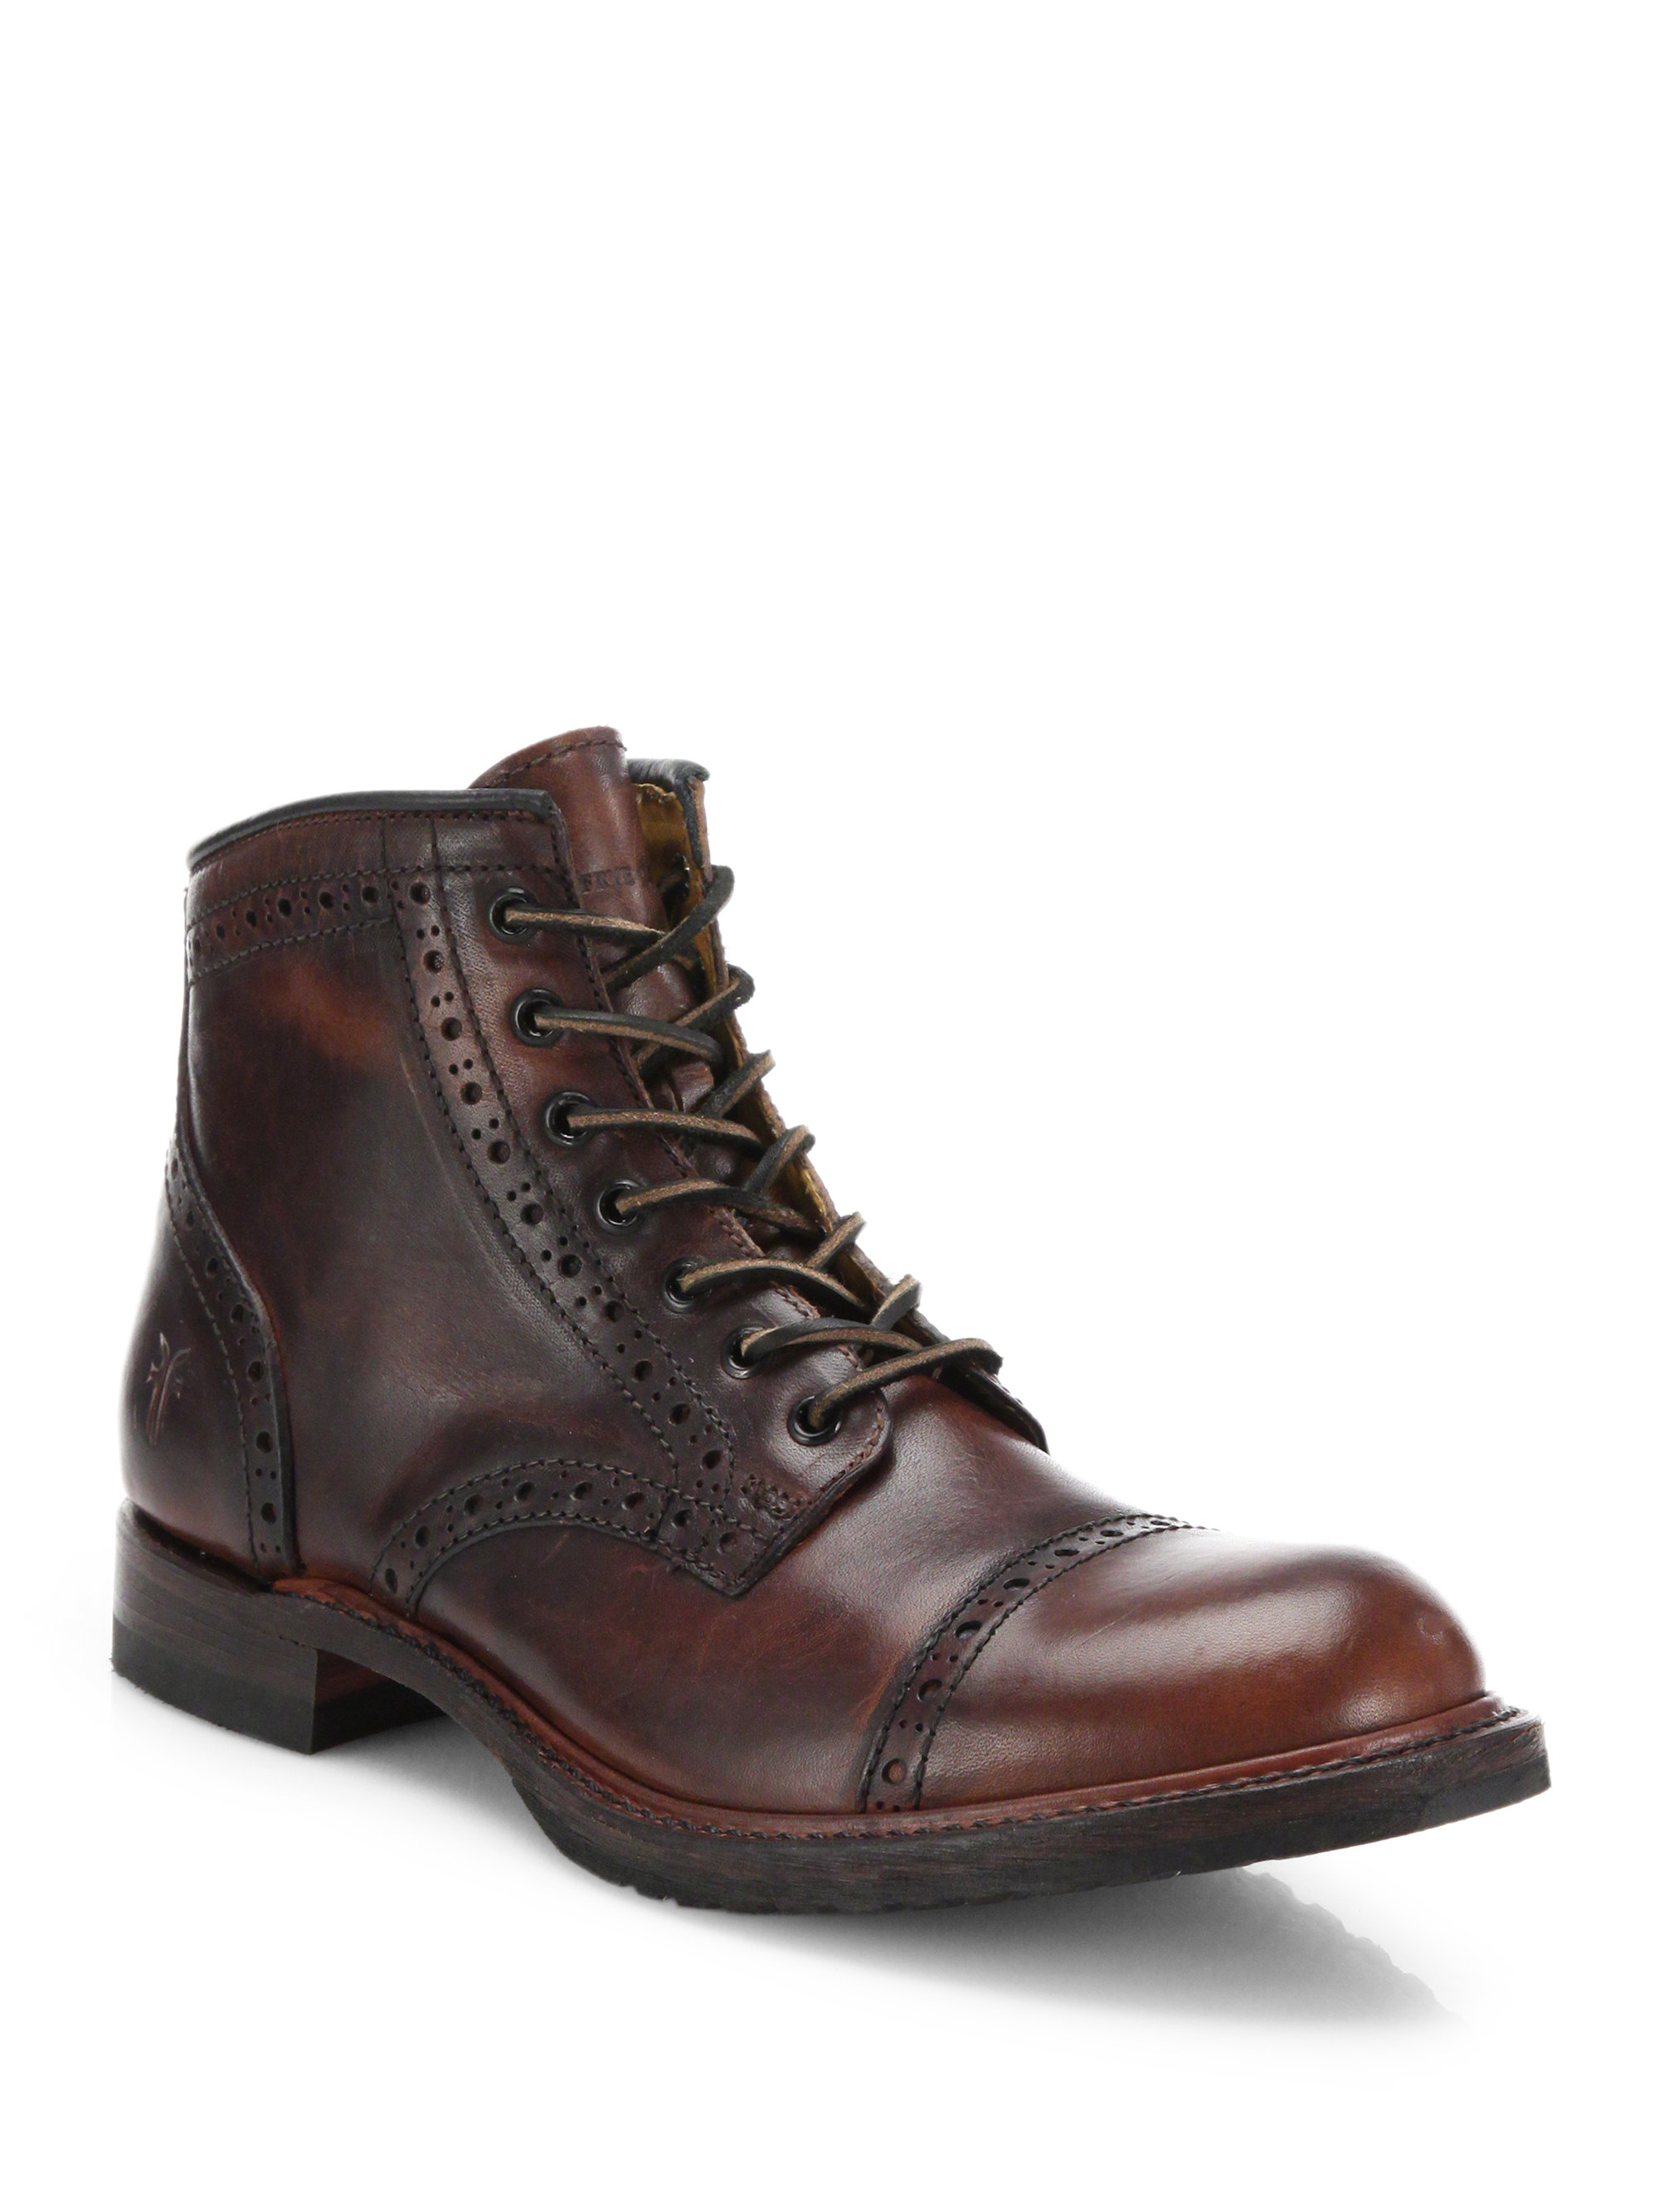 frye logan leather brogue cap toe boots in brown for